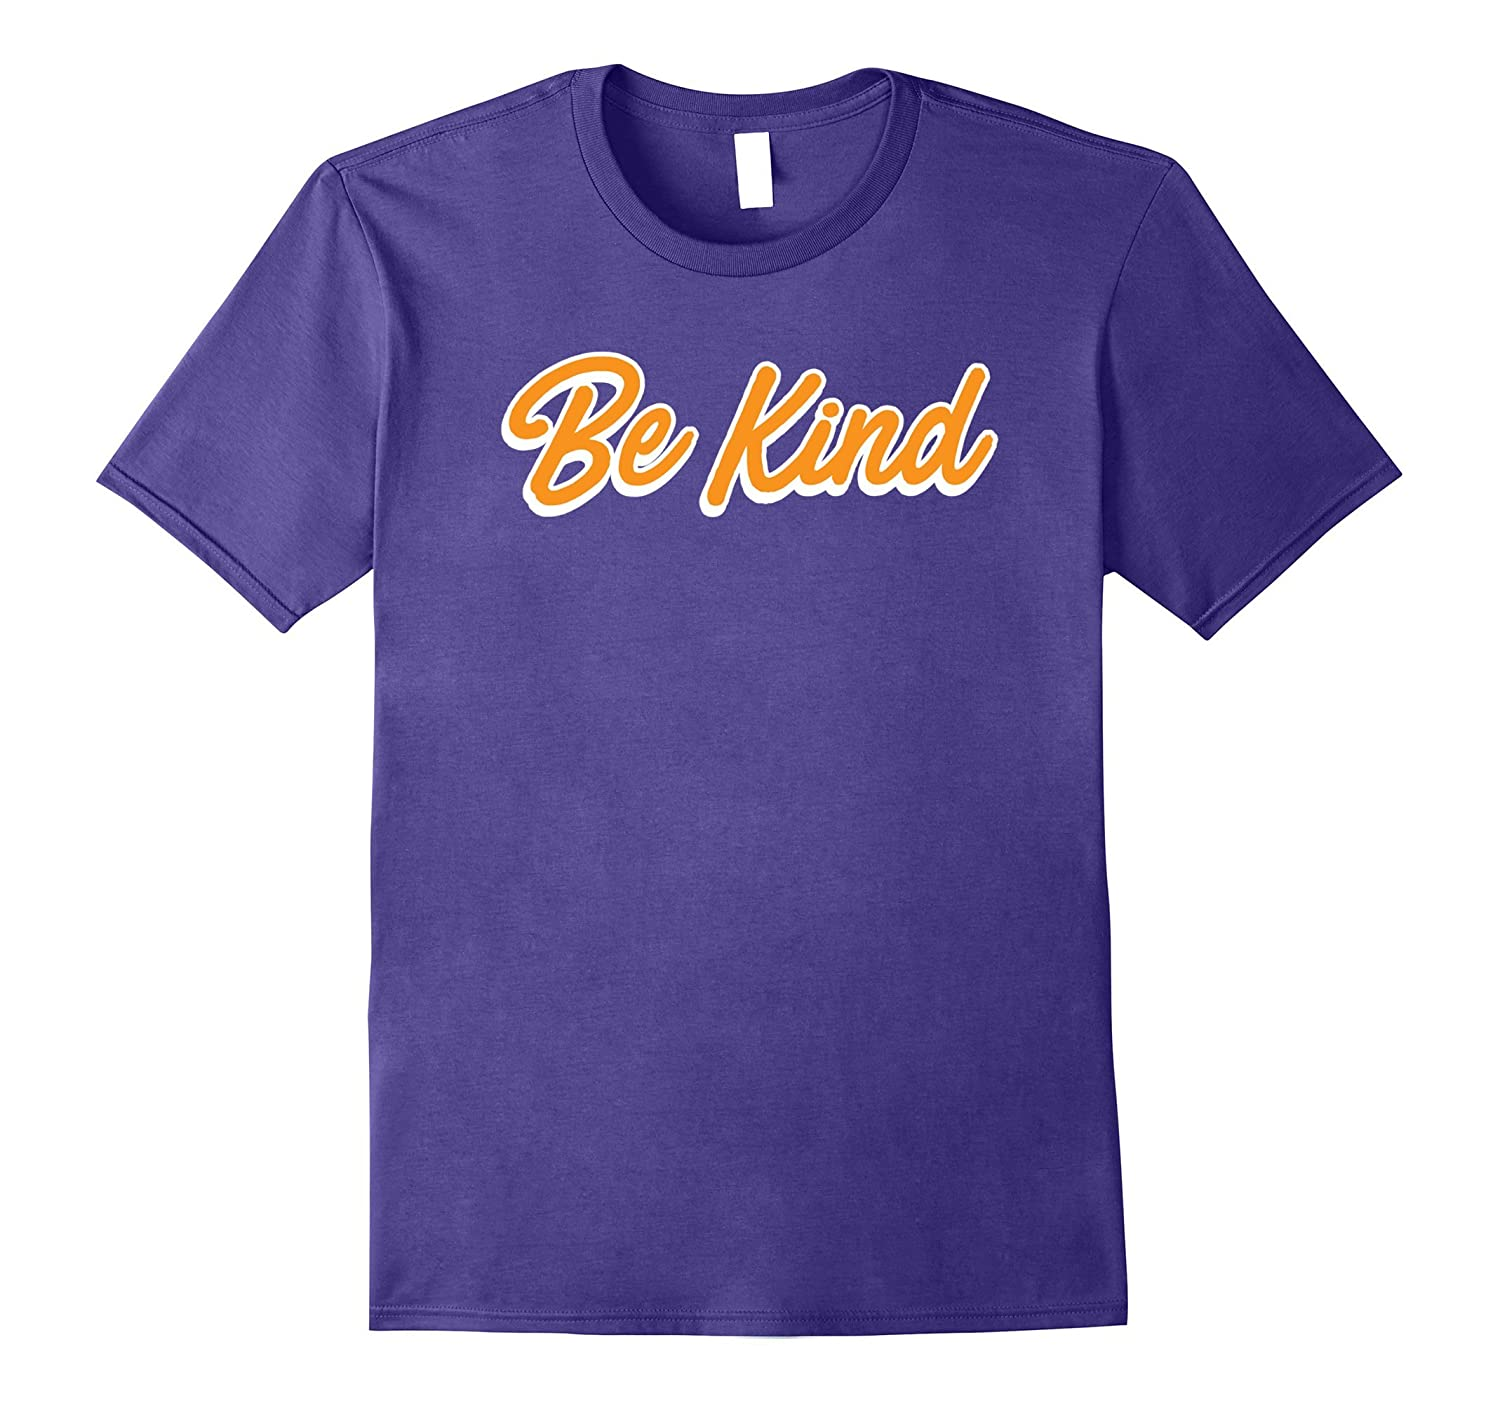 Be Kind -Shirt/Kindness Shirt/Motivational Inspirational Tee-FL